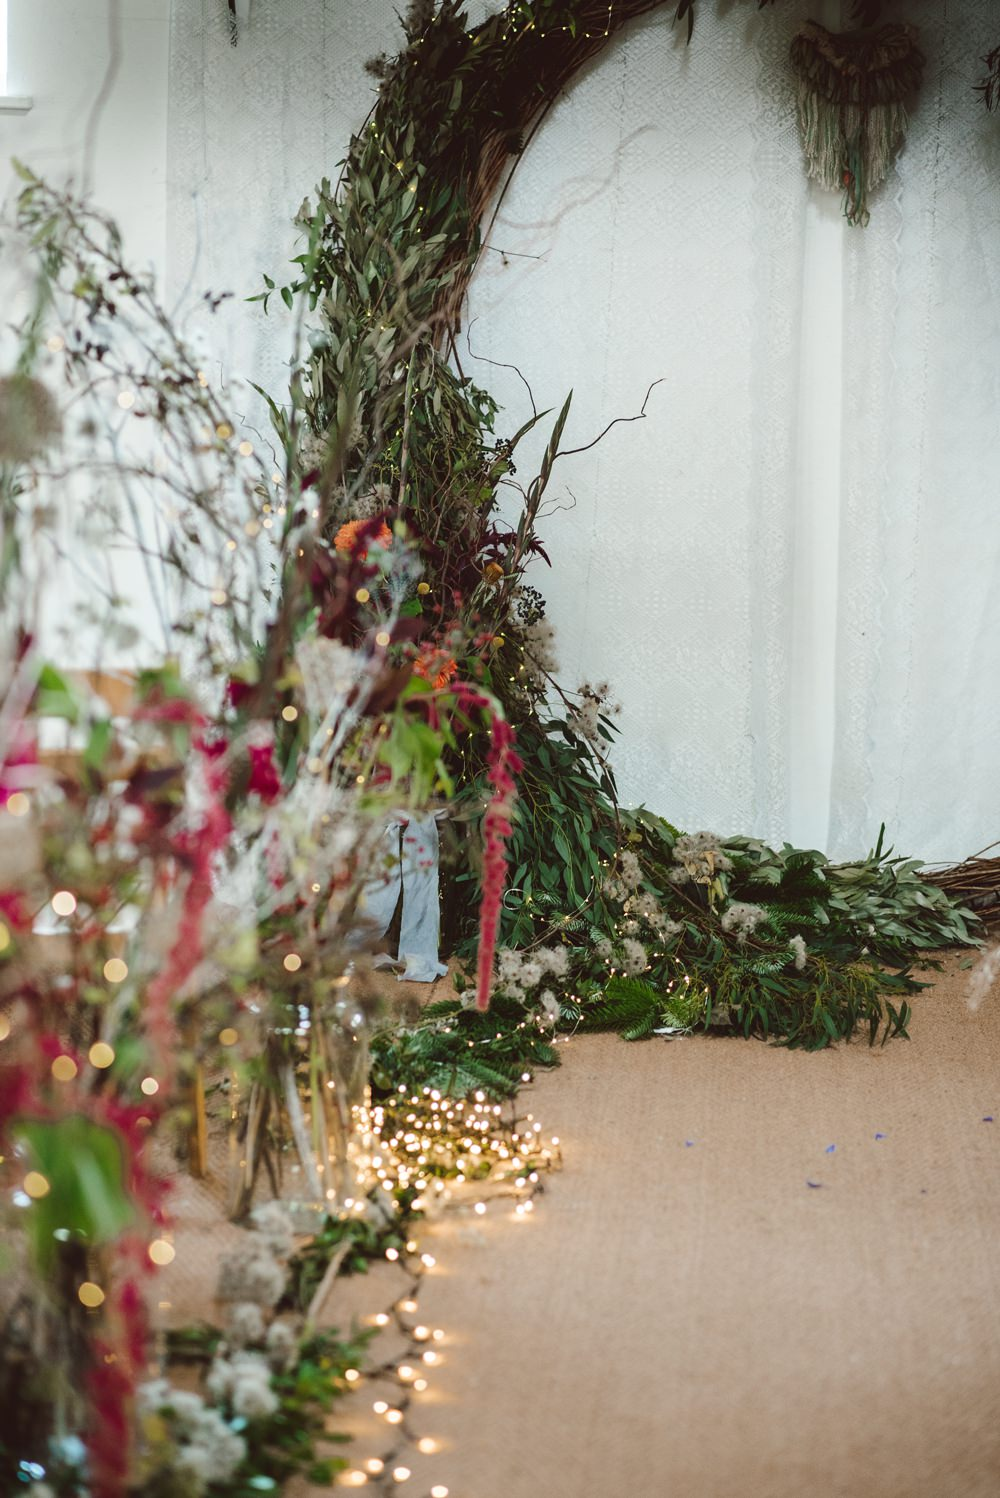 Moongate Flower Arch Backdrop Ceremony Conifer Eucalyptus Greenery Foliage Aisle Fairy Lights Rustic Christmas Wedding Ideas Dhw Photography